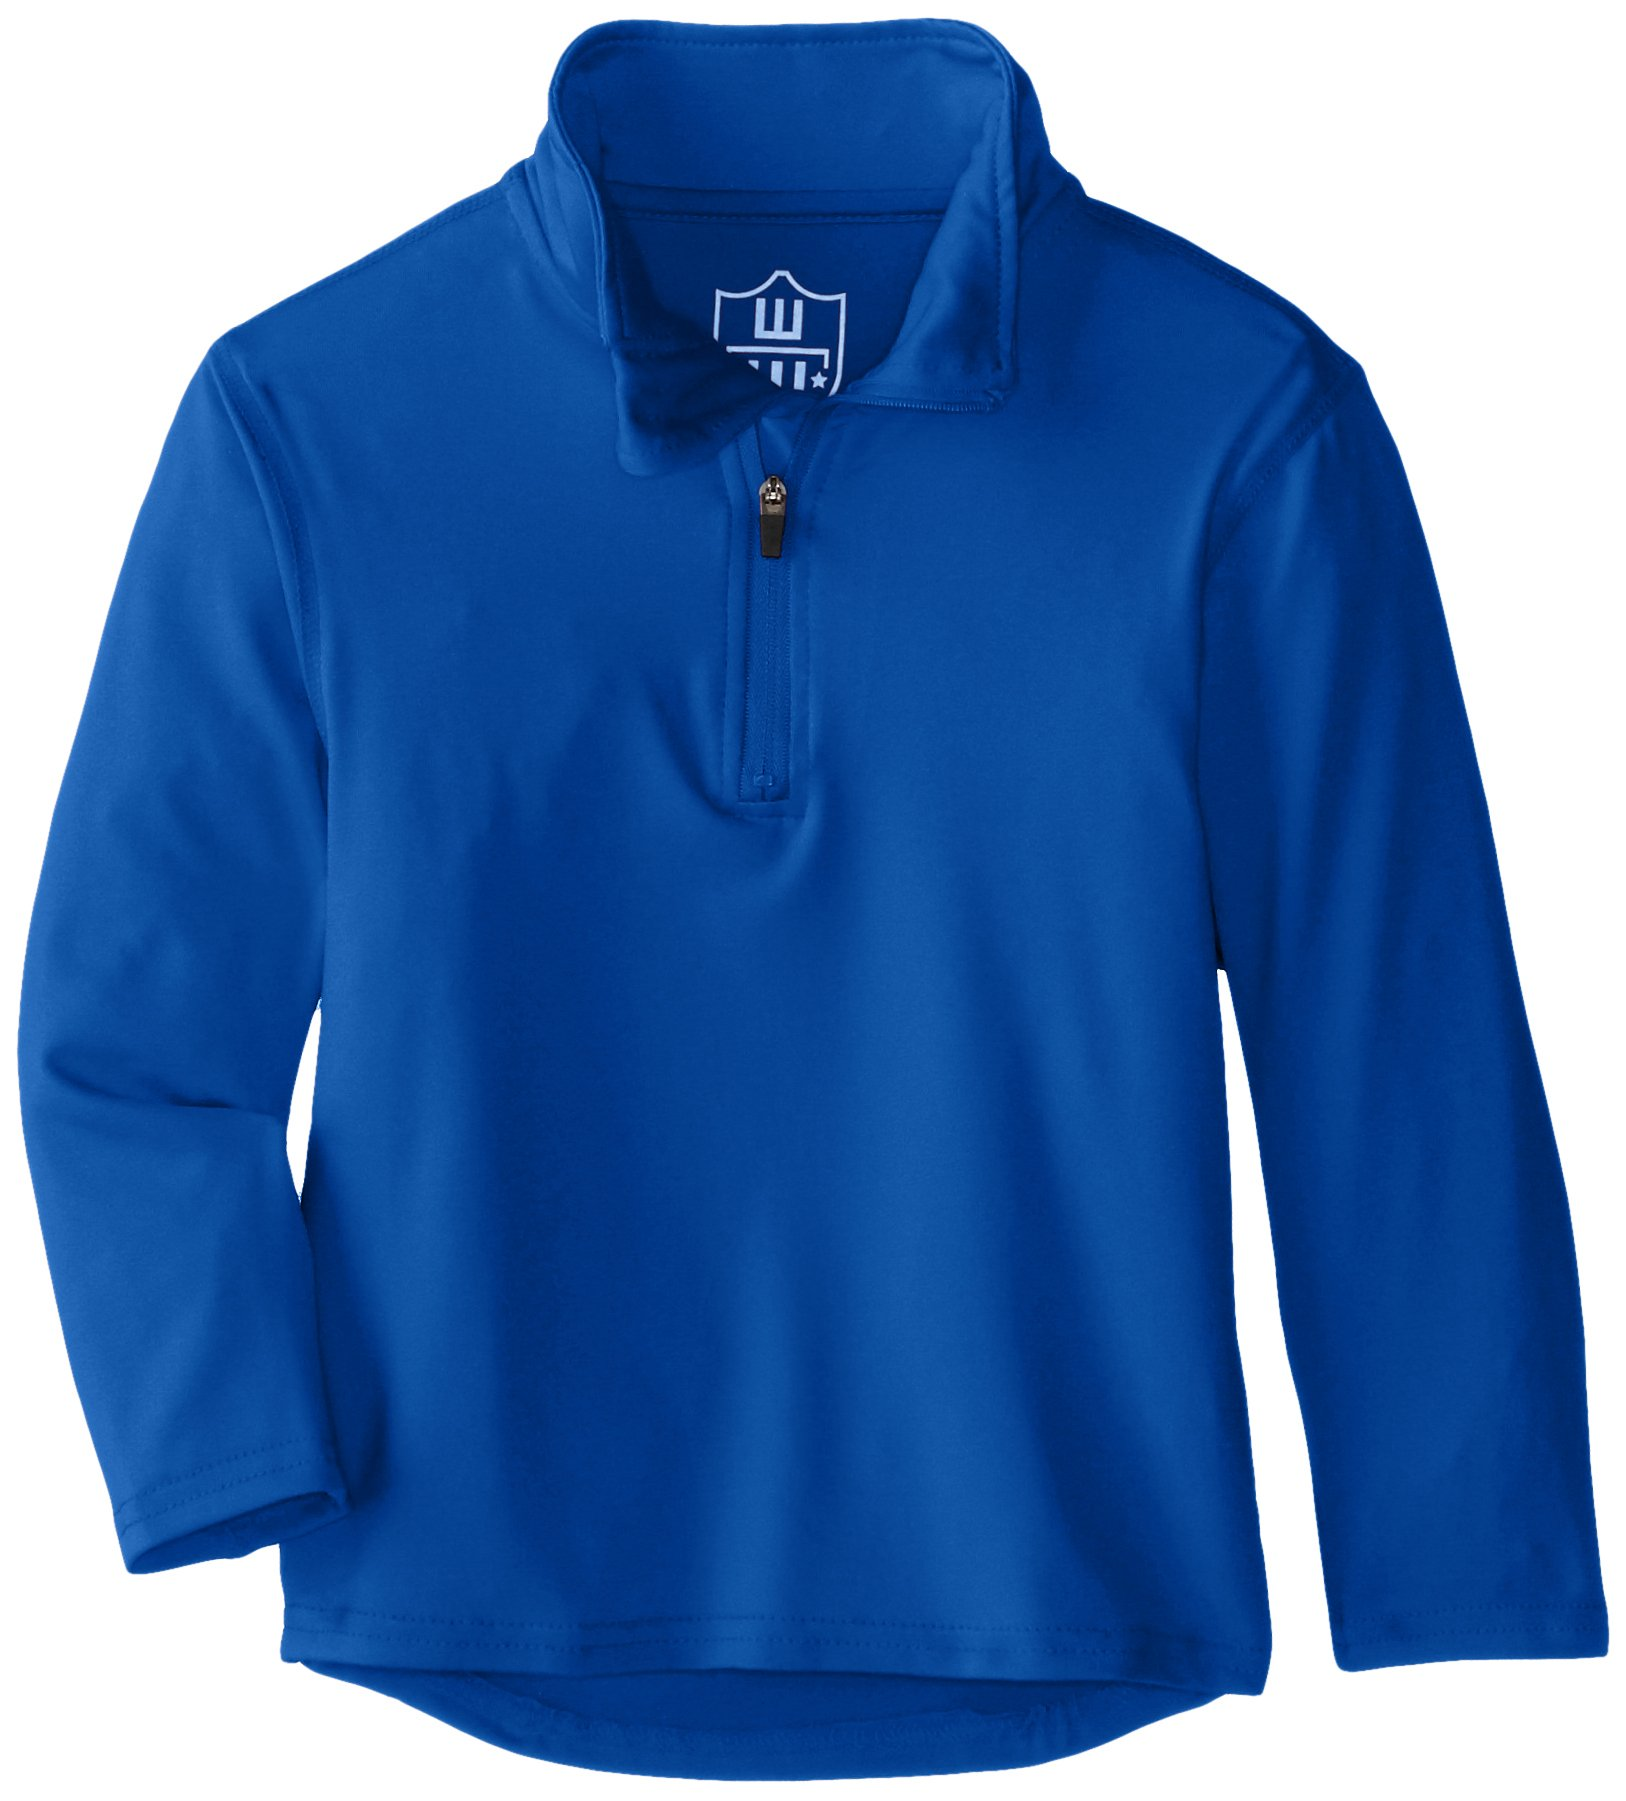 Wes and Willy Boys' Little Performance Pullover Quarter Zip Top, Blue Moon, 6